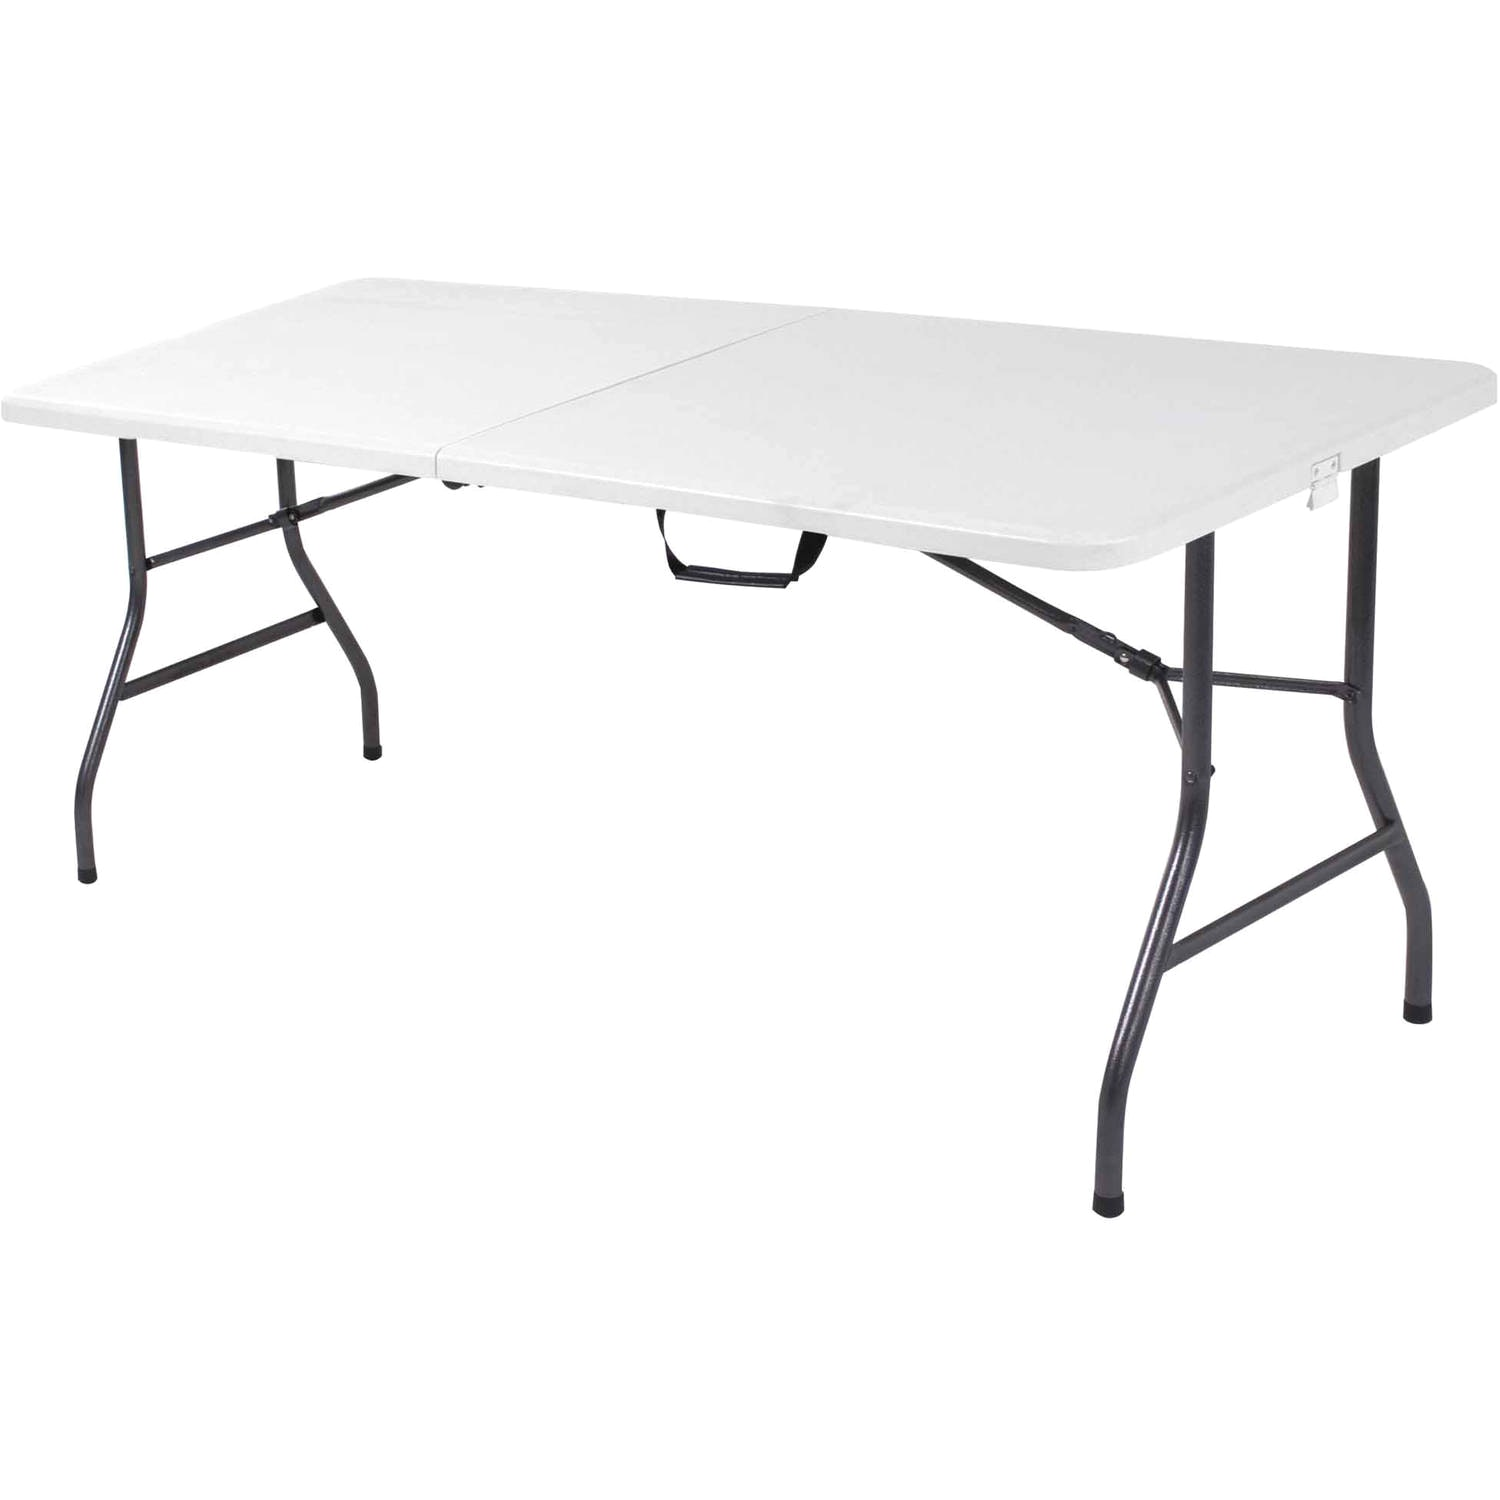 Costco Folding Tables | Cheap Foldable Table | Portable Folding Table and Chairs